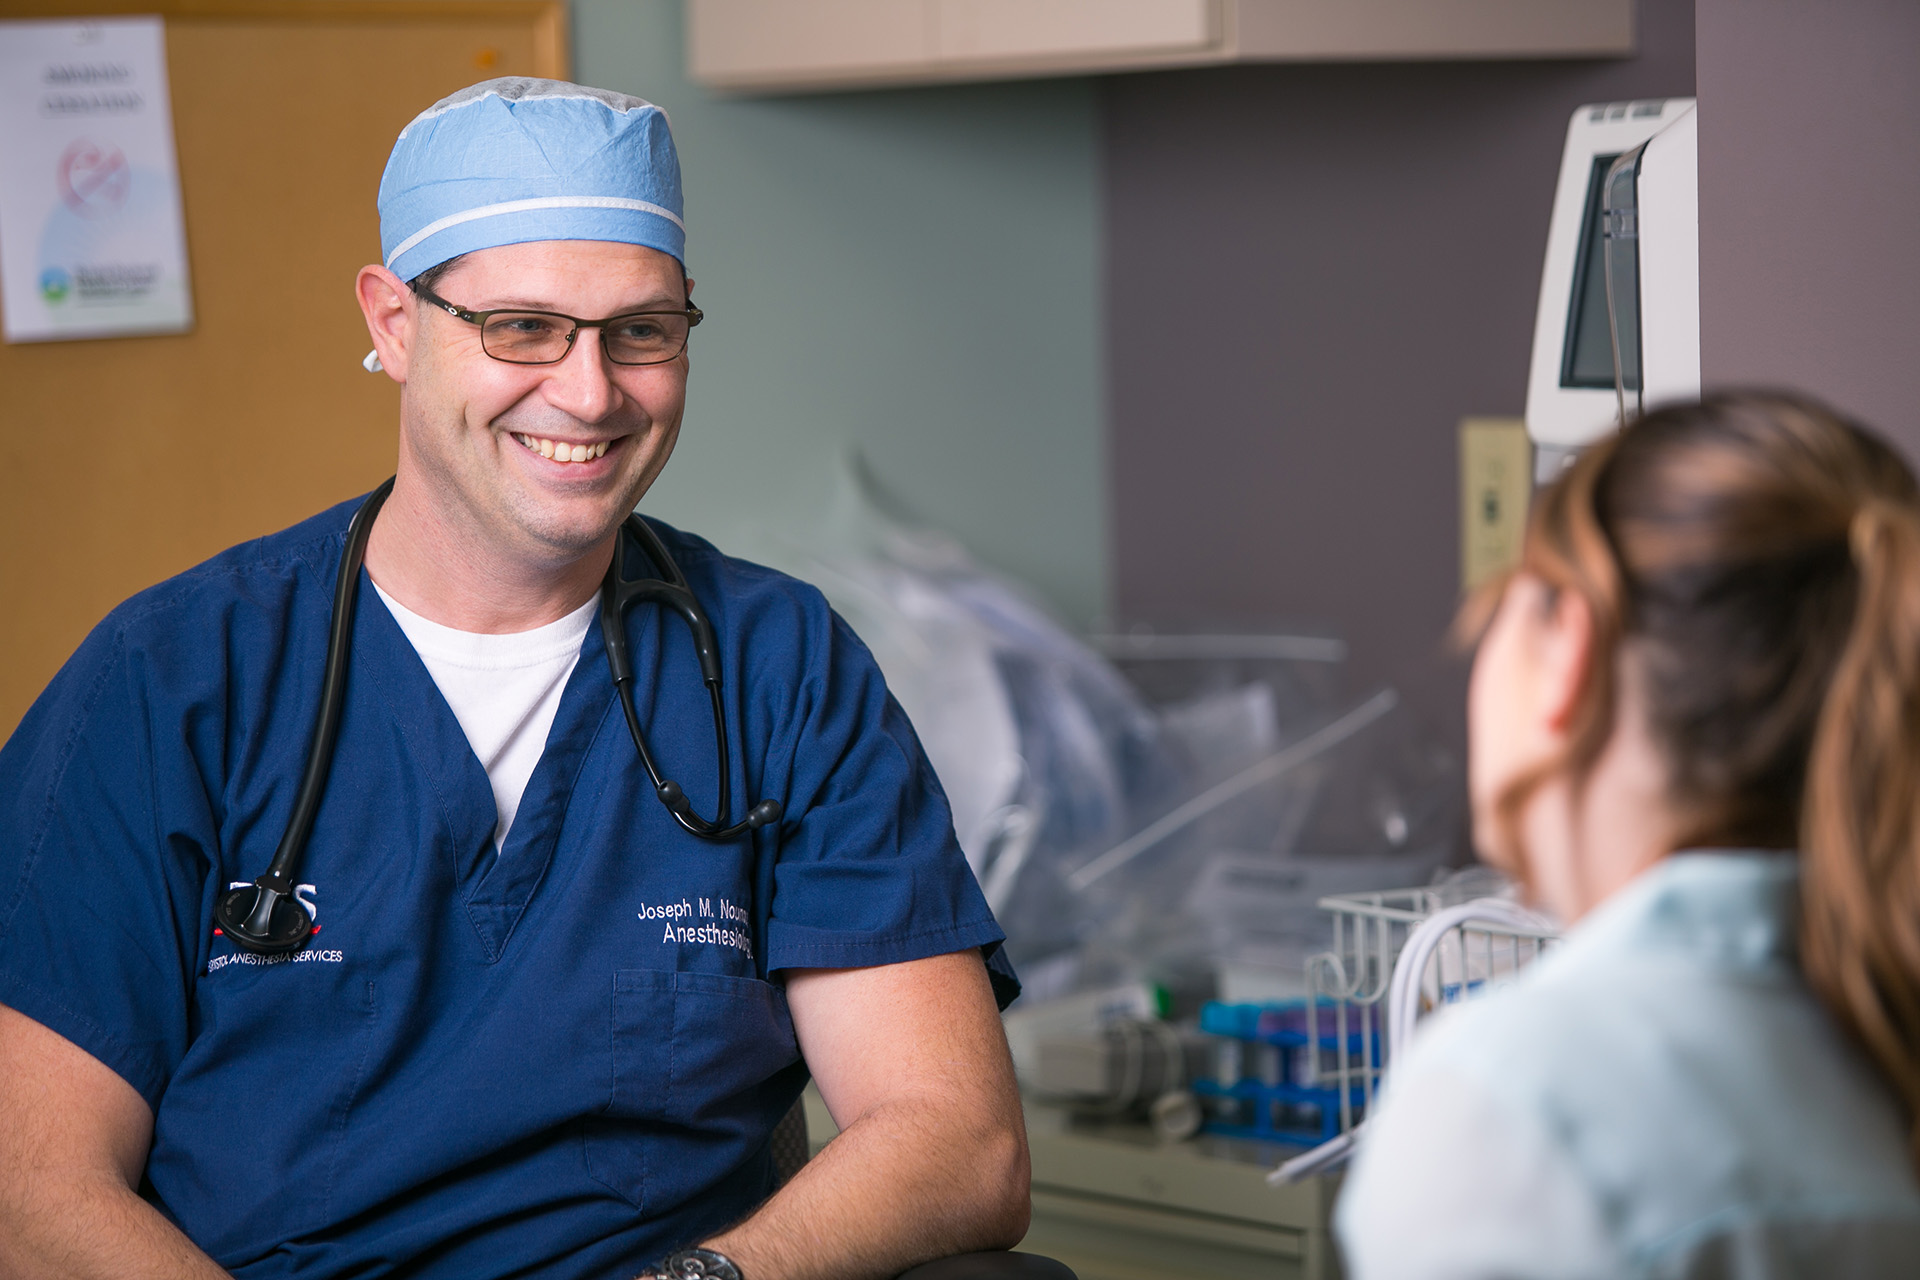 Home Bristol Anesthesia Services